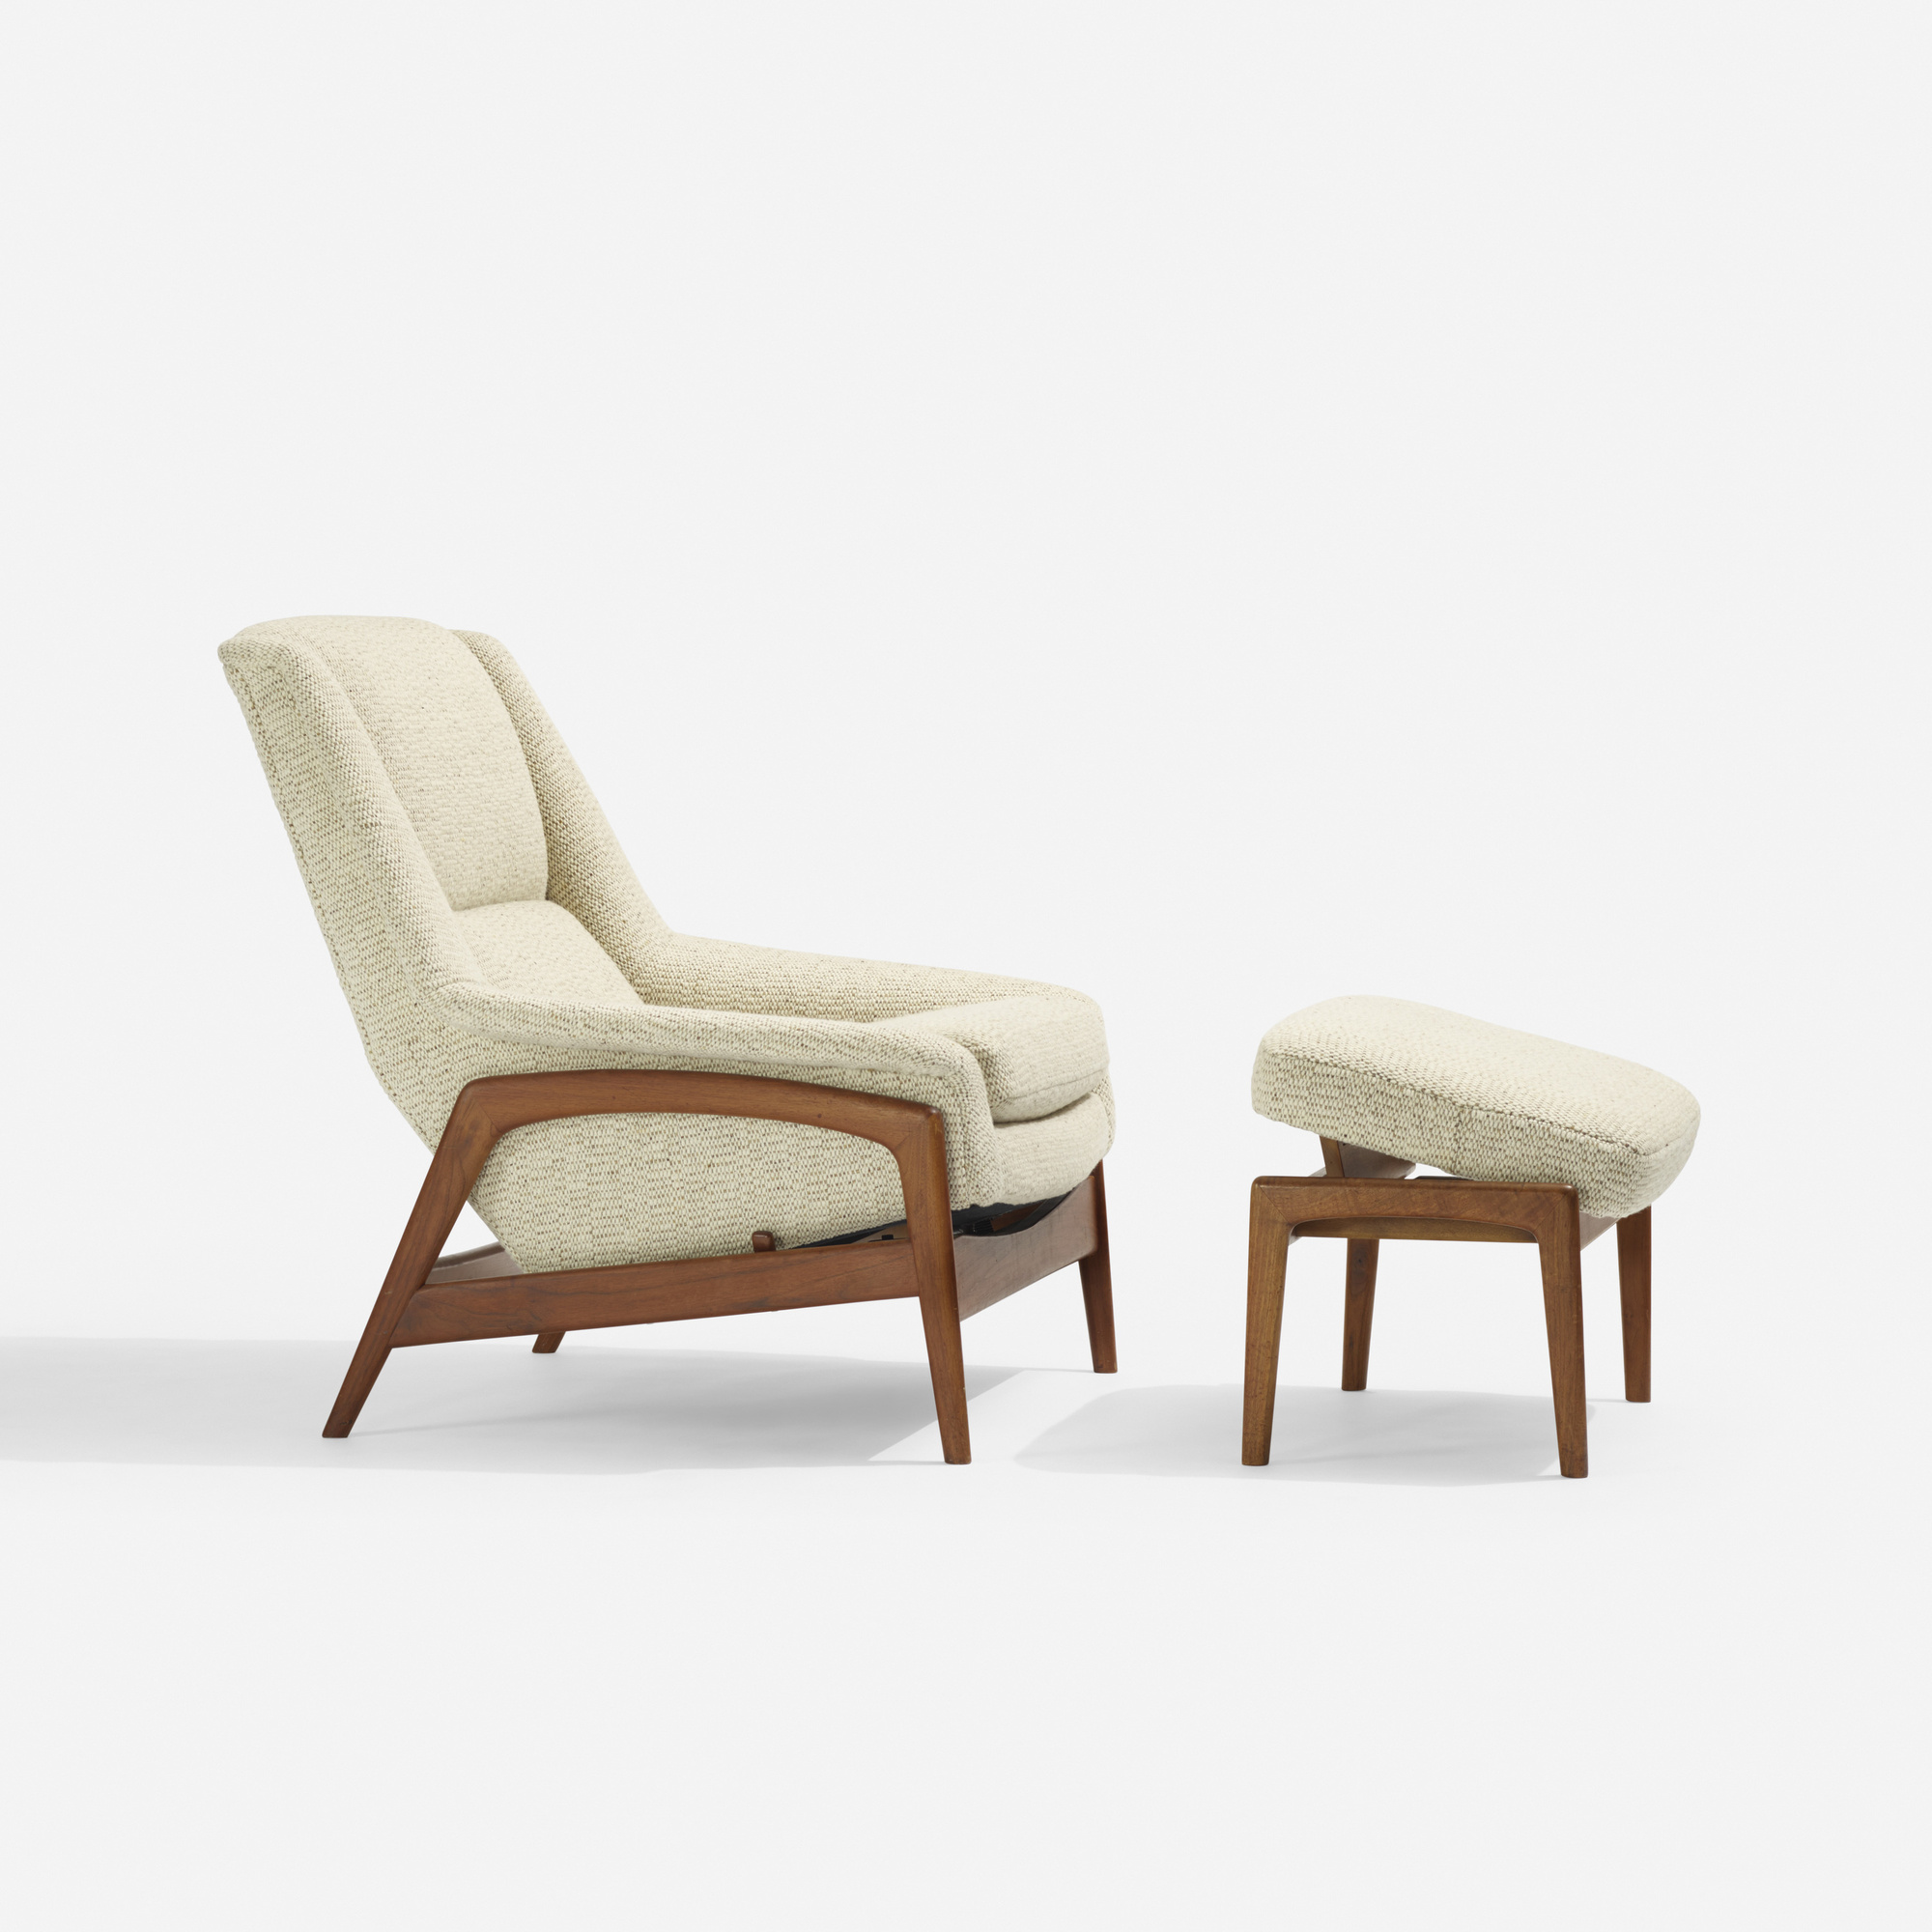 293: Folke Ohlsson / lounge chair and ottoman (1 of 2)